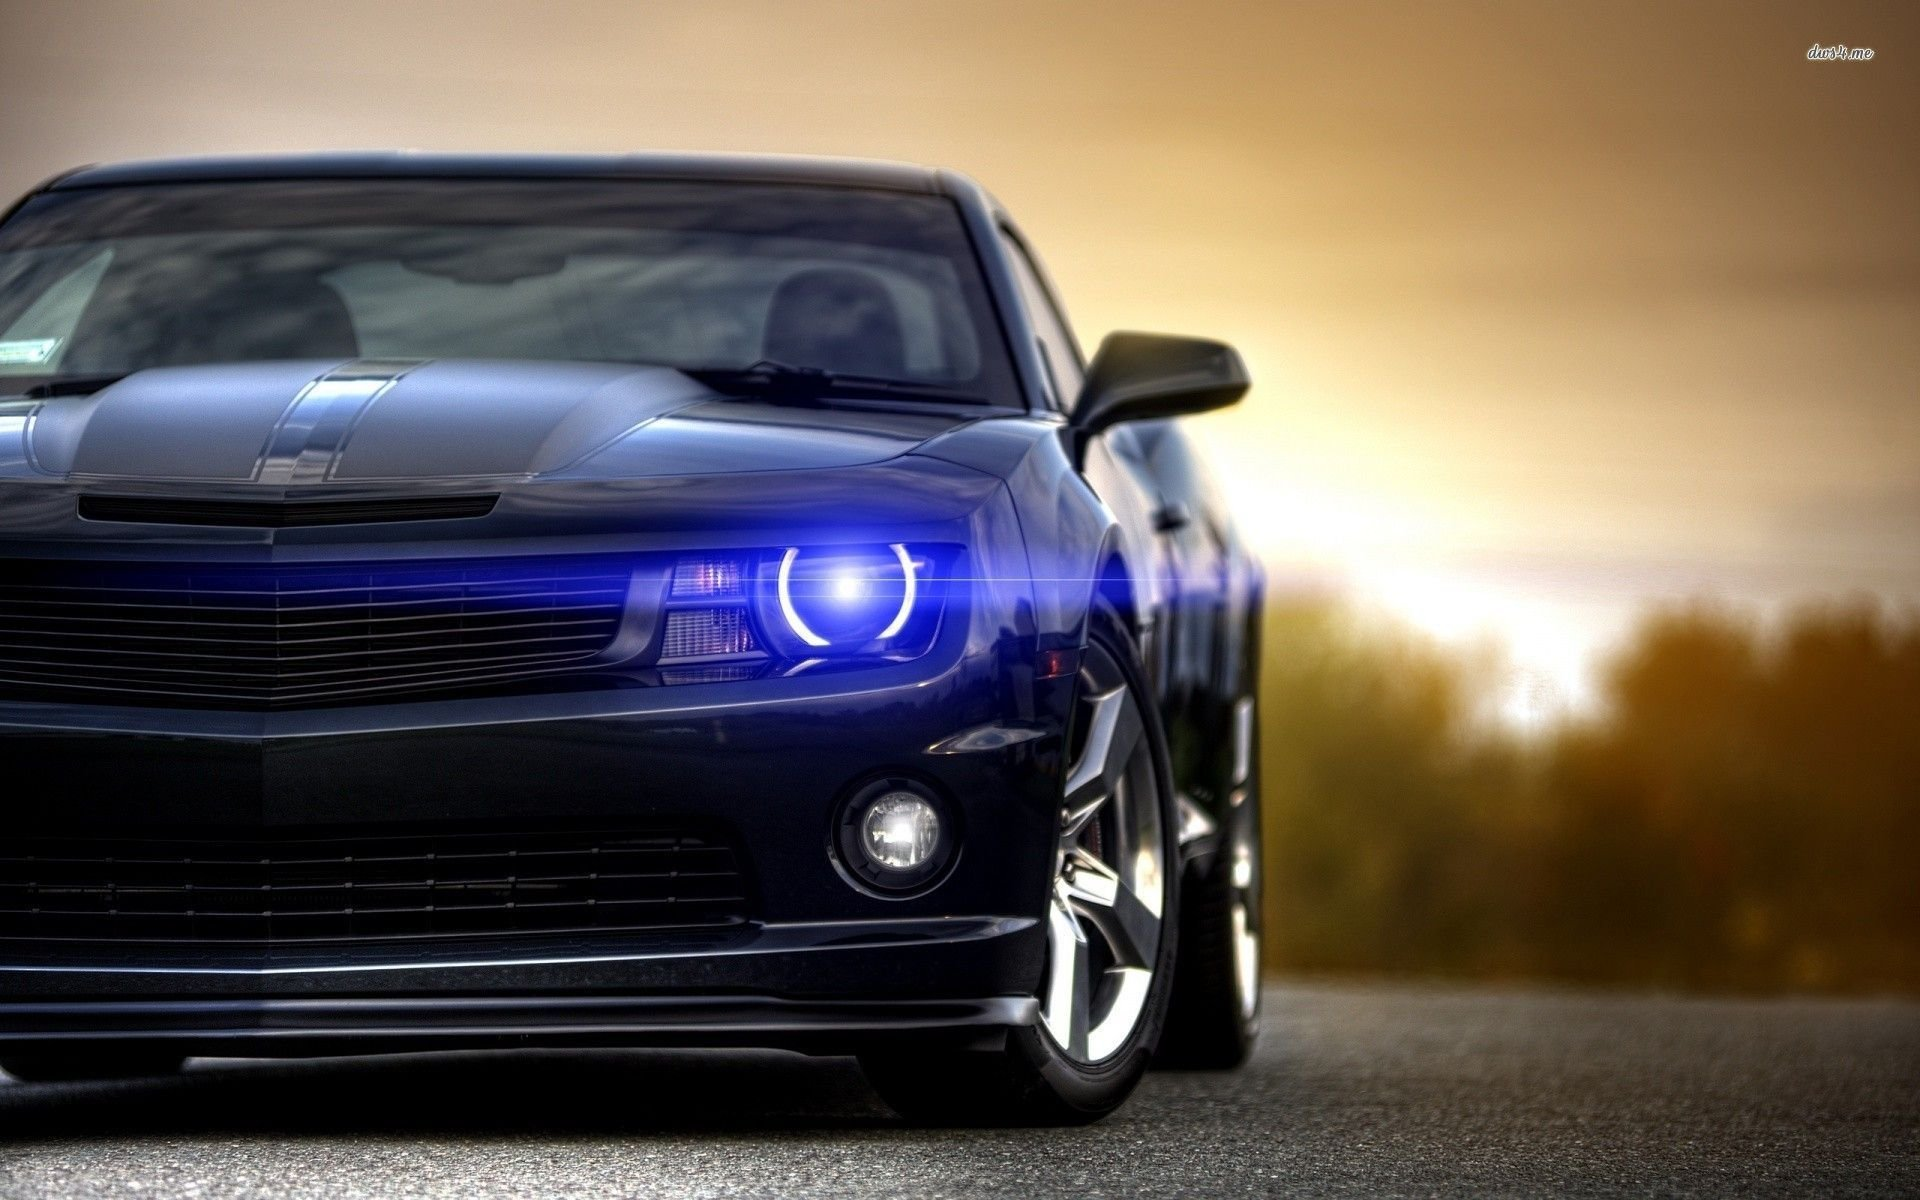 New Camaro Wallpaper Hd Google Search Chevy Camaro Chevy On This Month